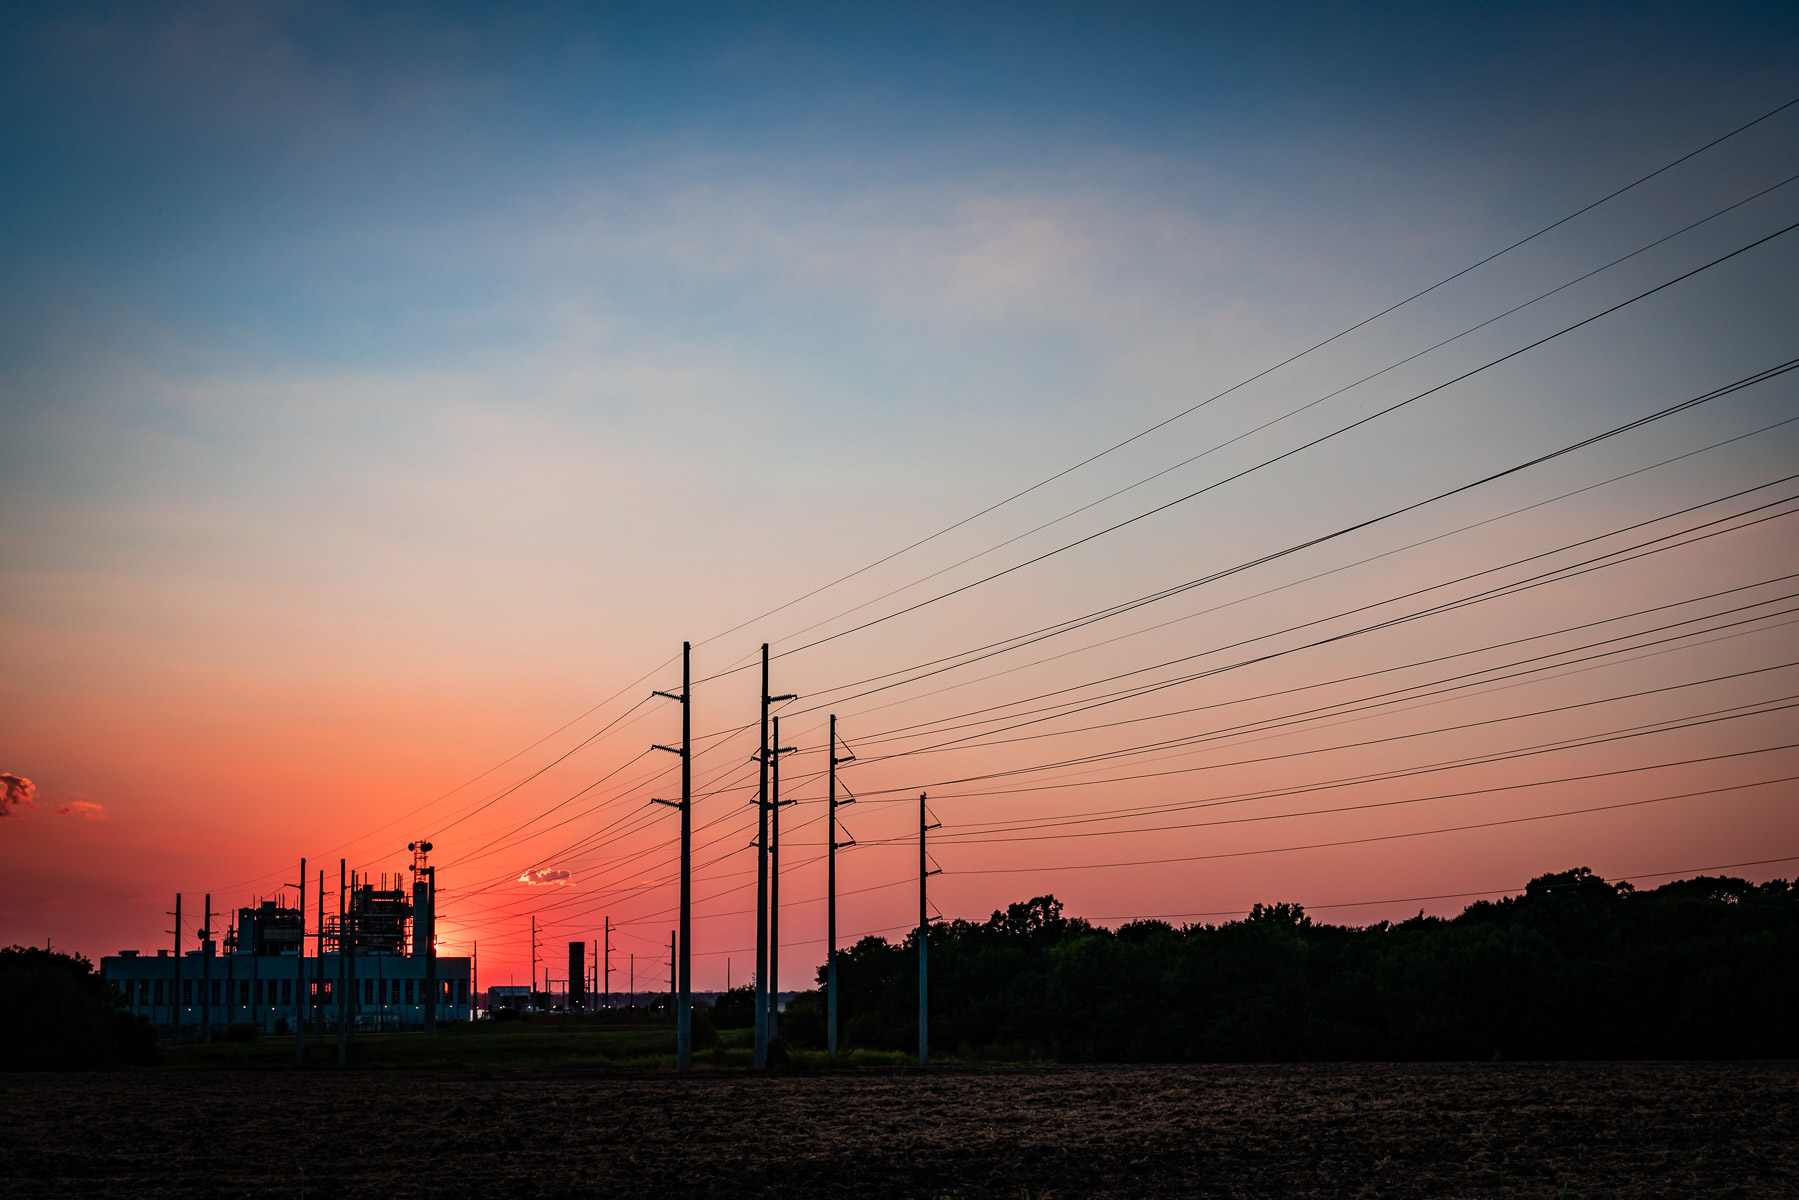 The sun sets behind the Garland City Power Plant at Lake Lavon, Texas.